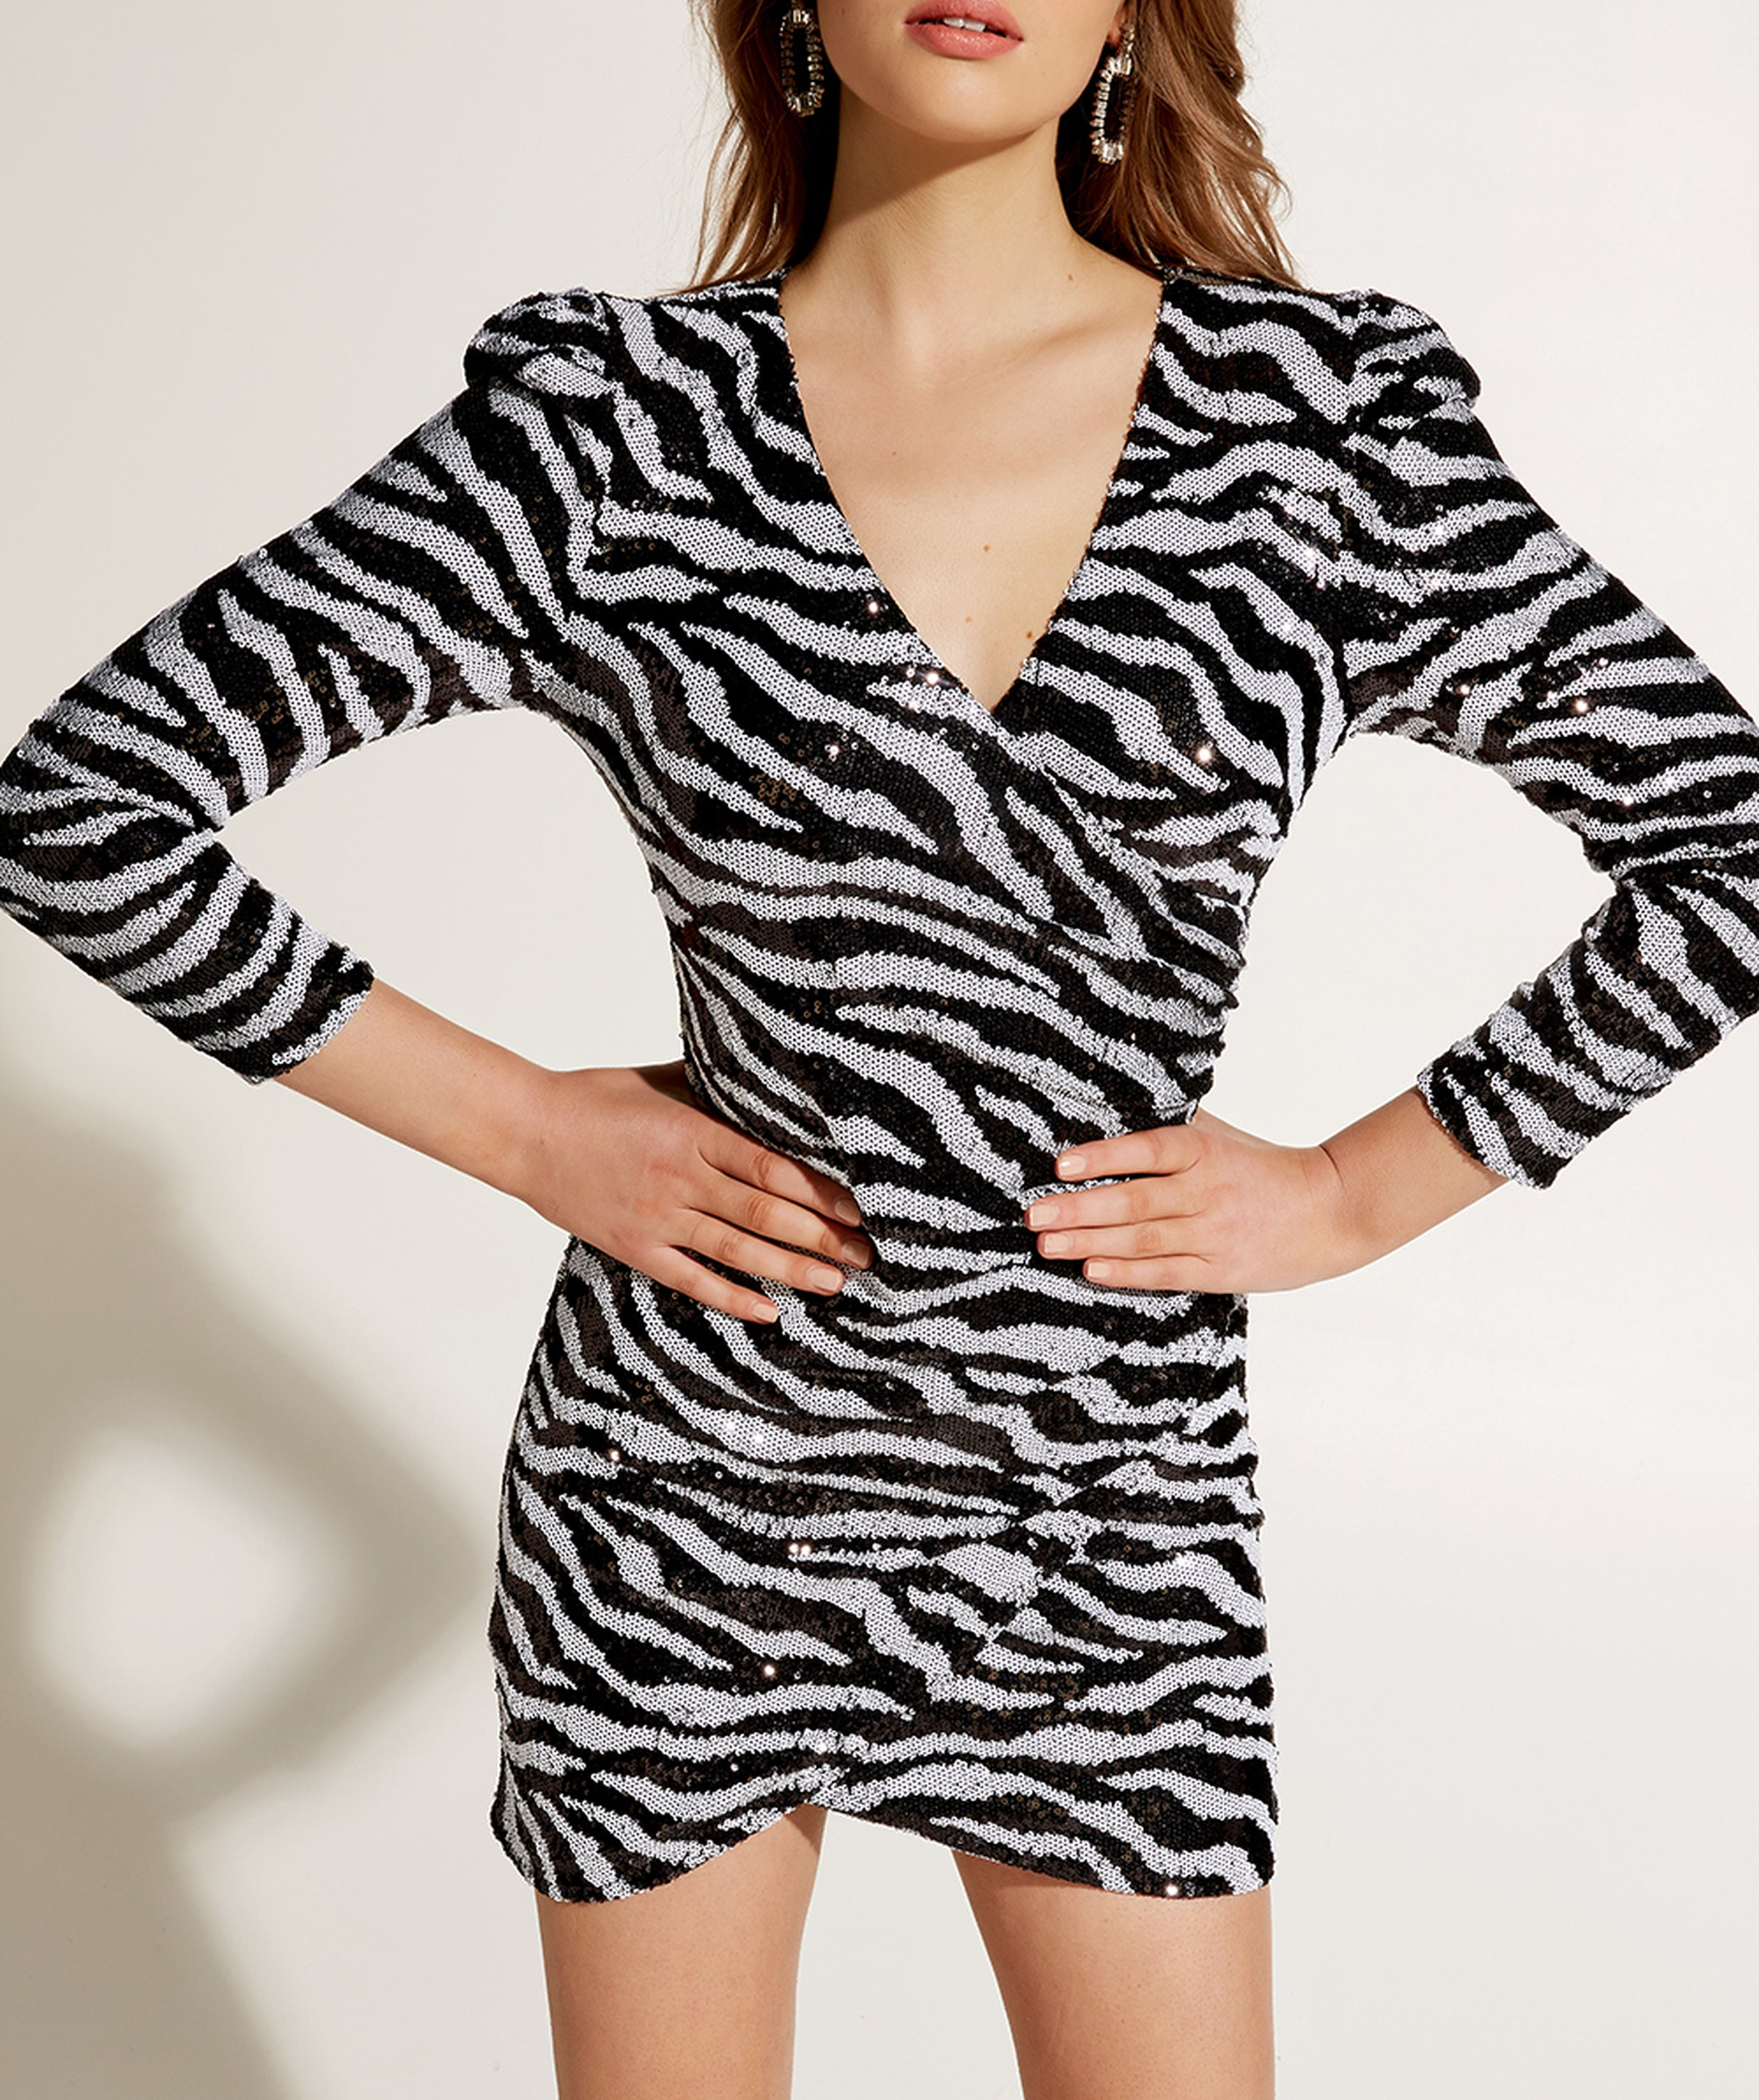 BARDOT SEQUIN ZEBRA DRESS